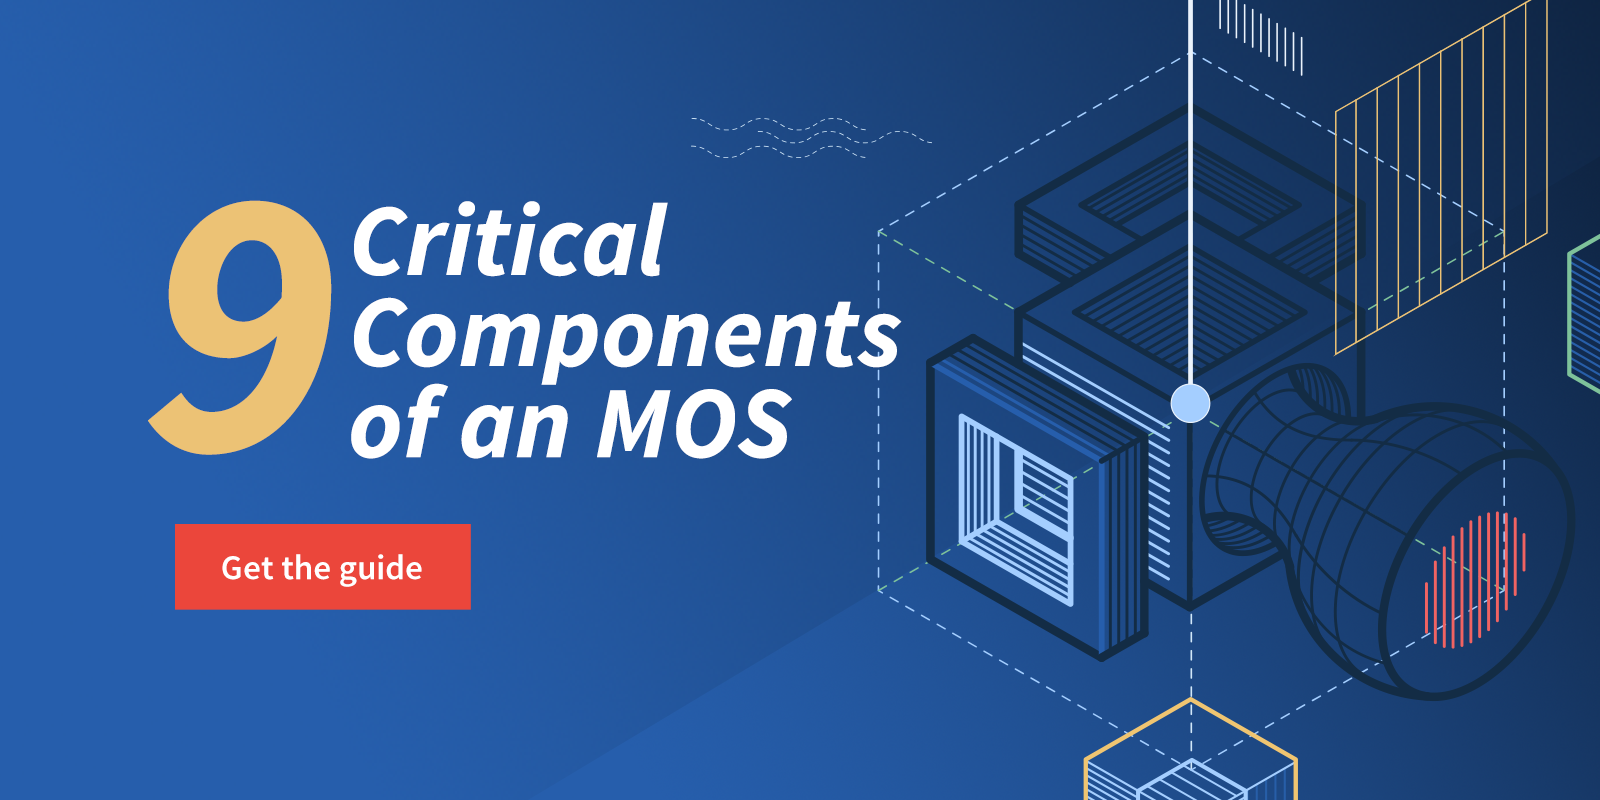 9 Critical Components of an MOS